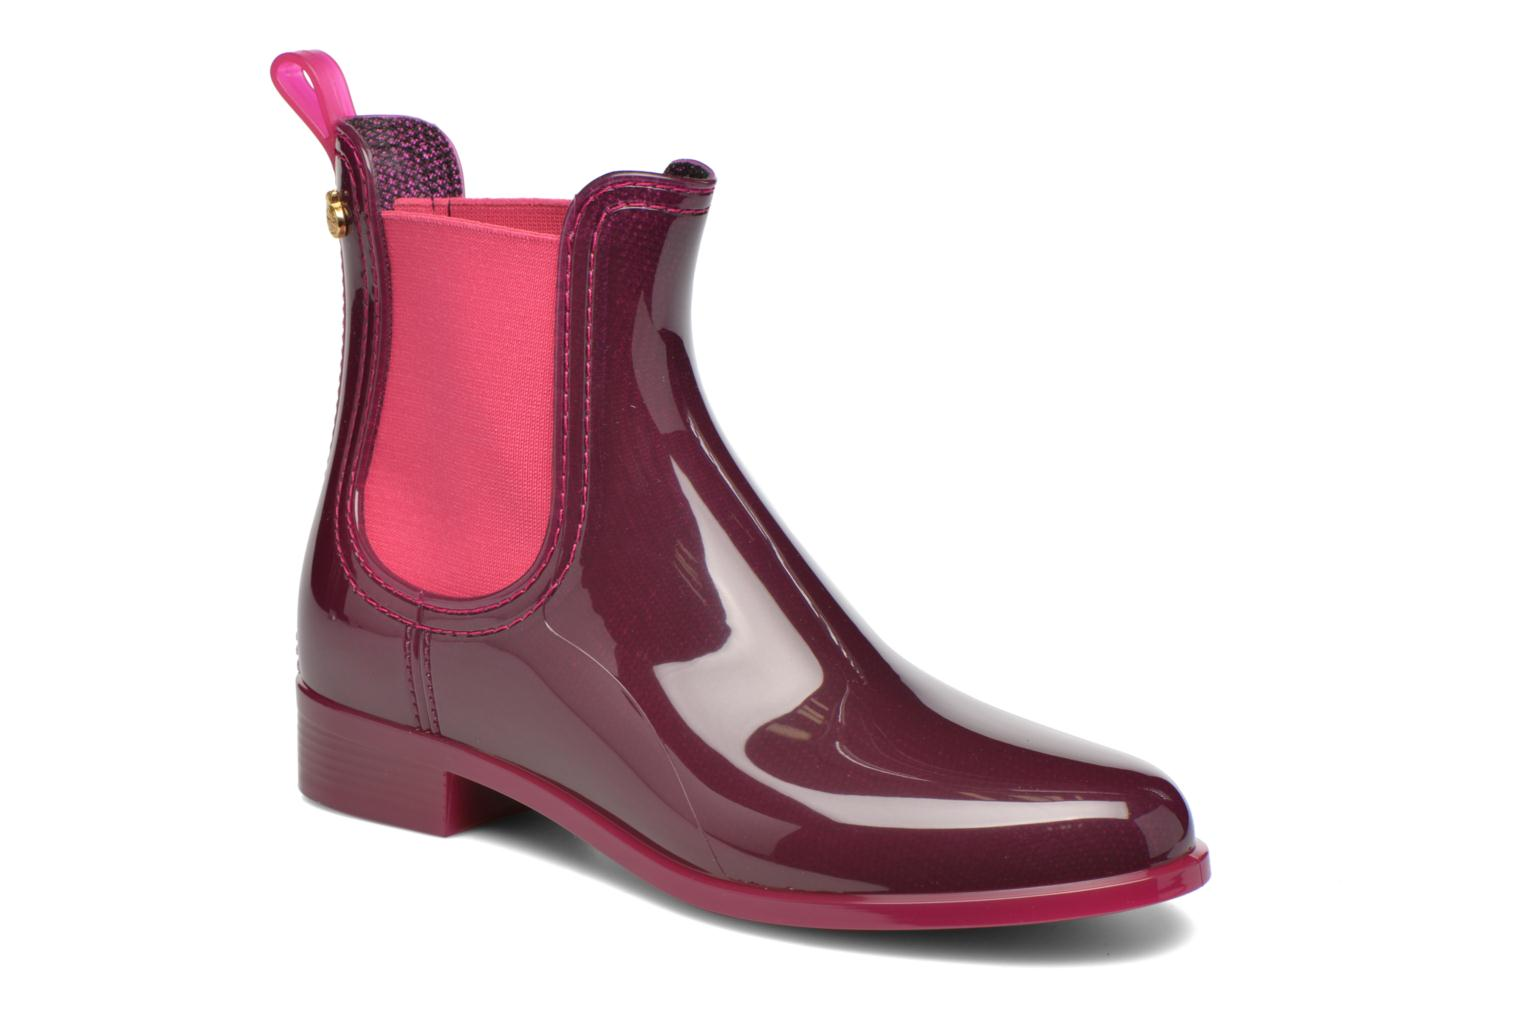 Bottines et boots Lemon Jelly Pisa Violet vue détail/paire